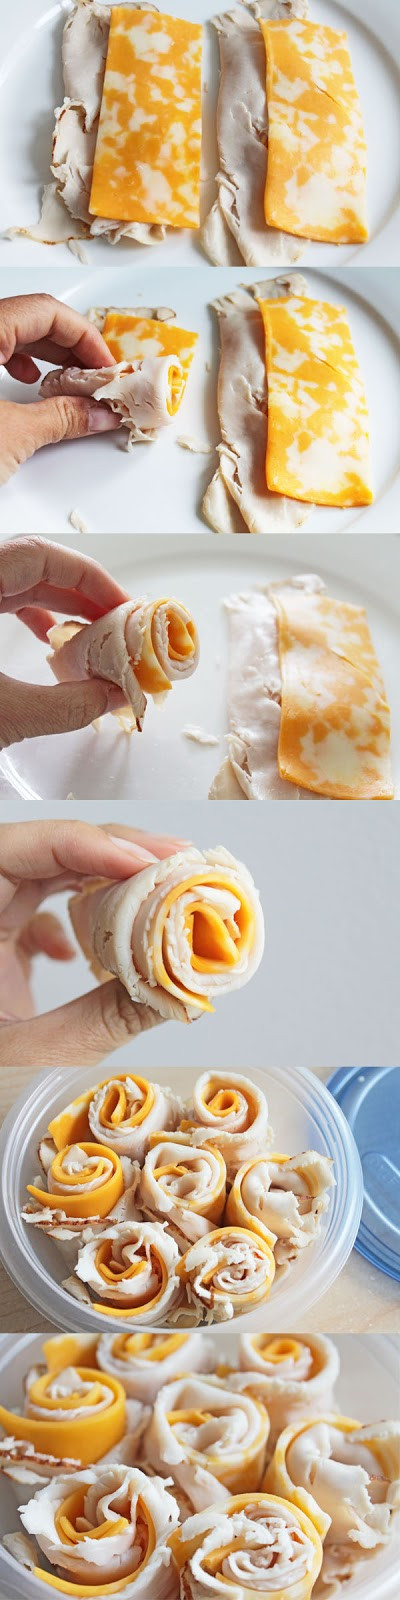 Healthy Snacks For Adults At Work  Easy to Make Snacks Turkey and Cheese Rolls Recipe